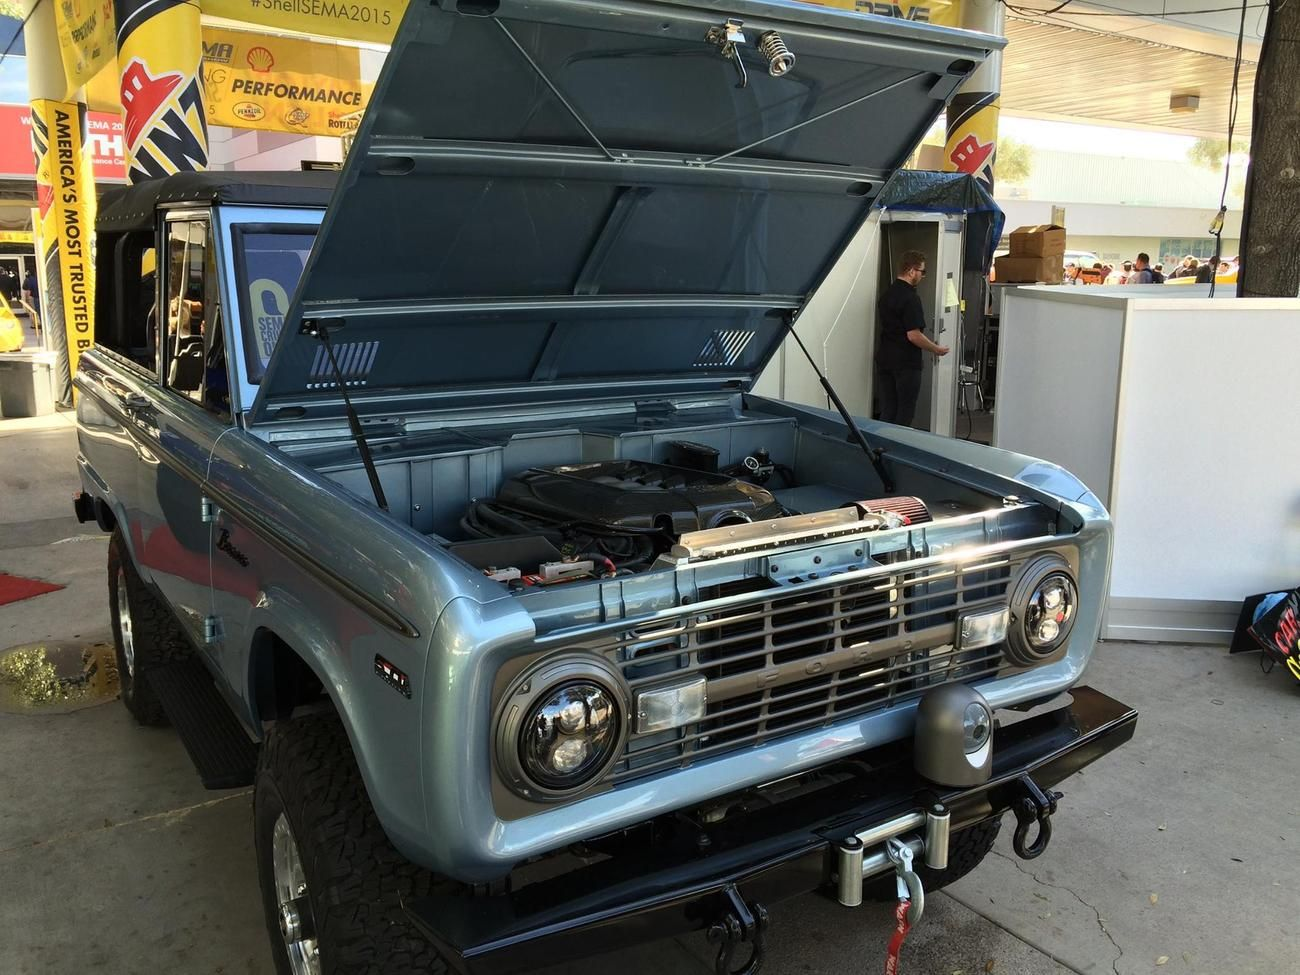 ford bronco with engine ford mustang gt v8 coyote swap ford pinterest ford bronco ford. Black Bedroom Furniture Sets. Home Design Ideas